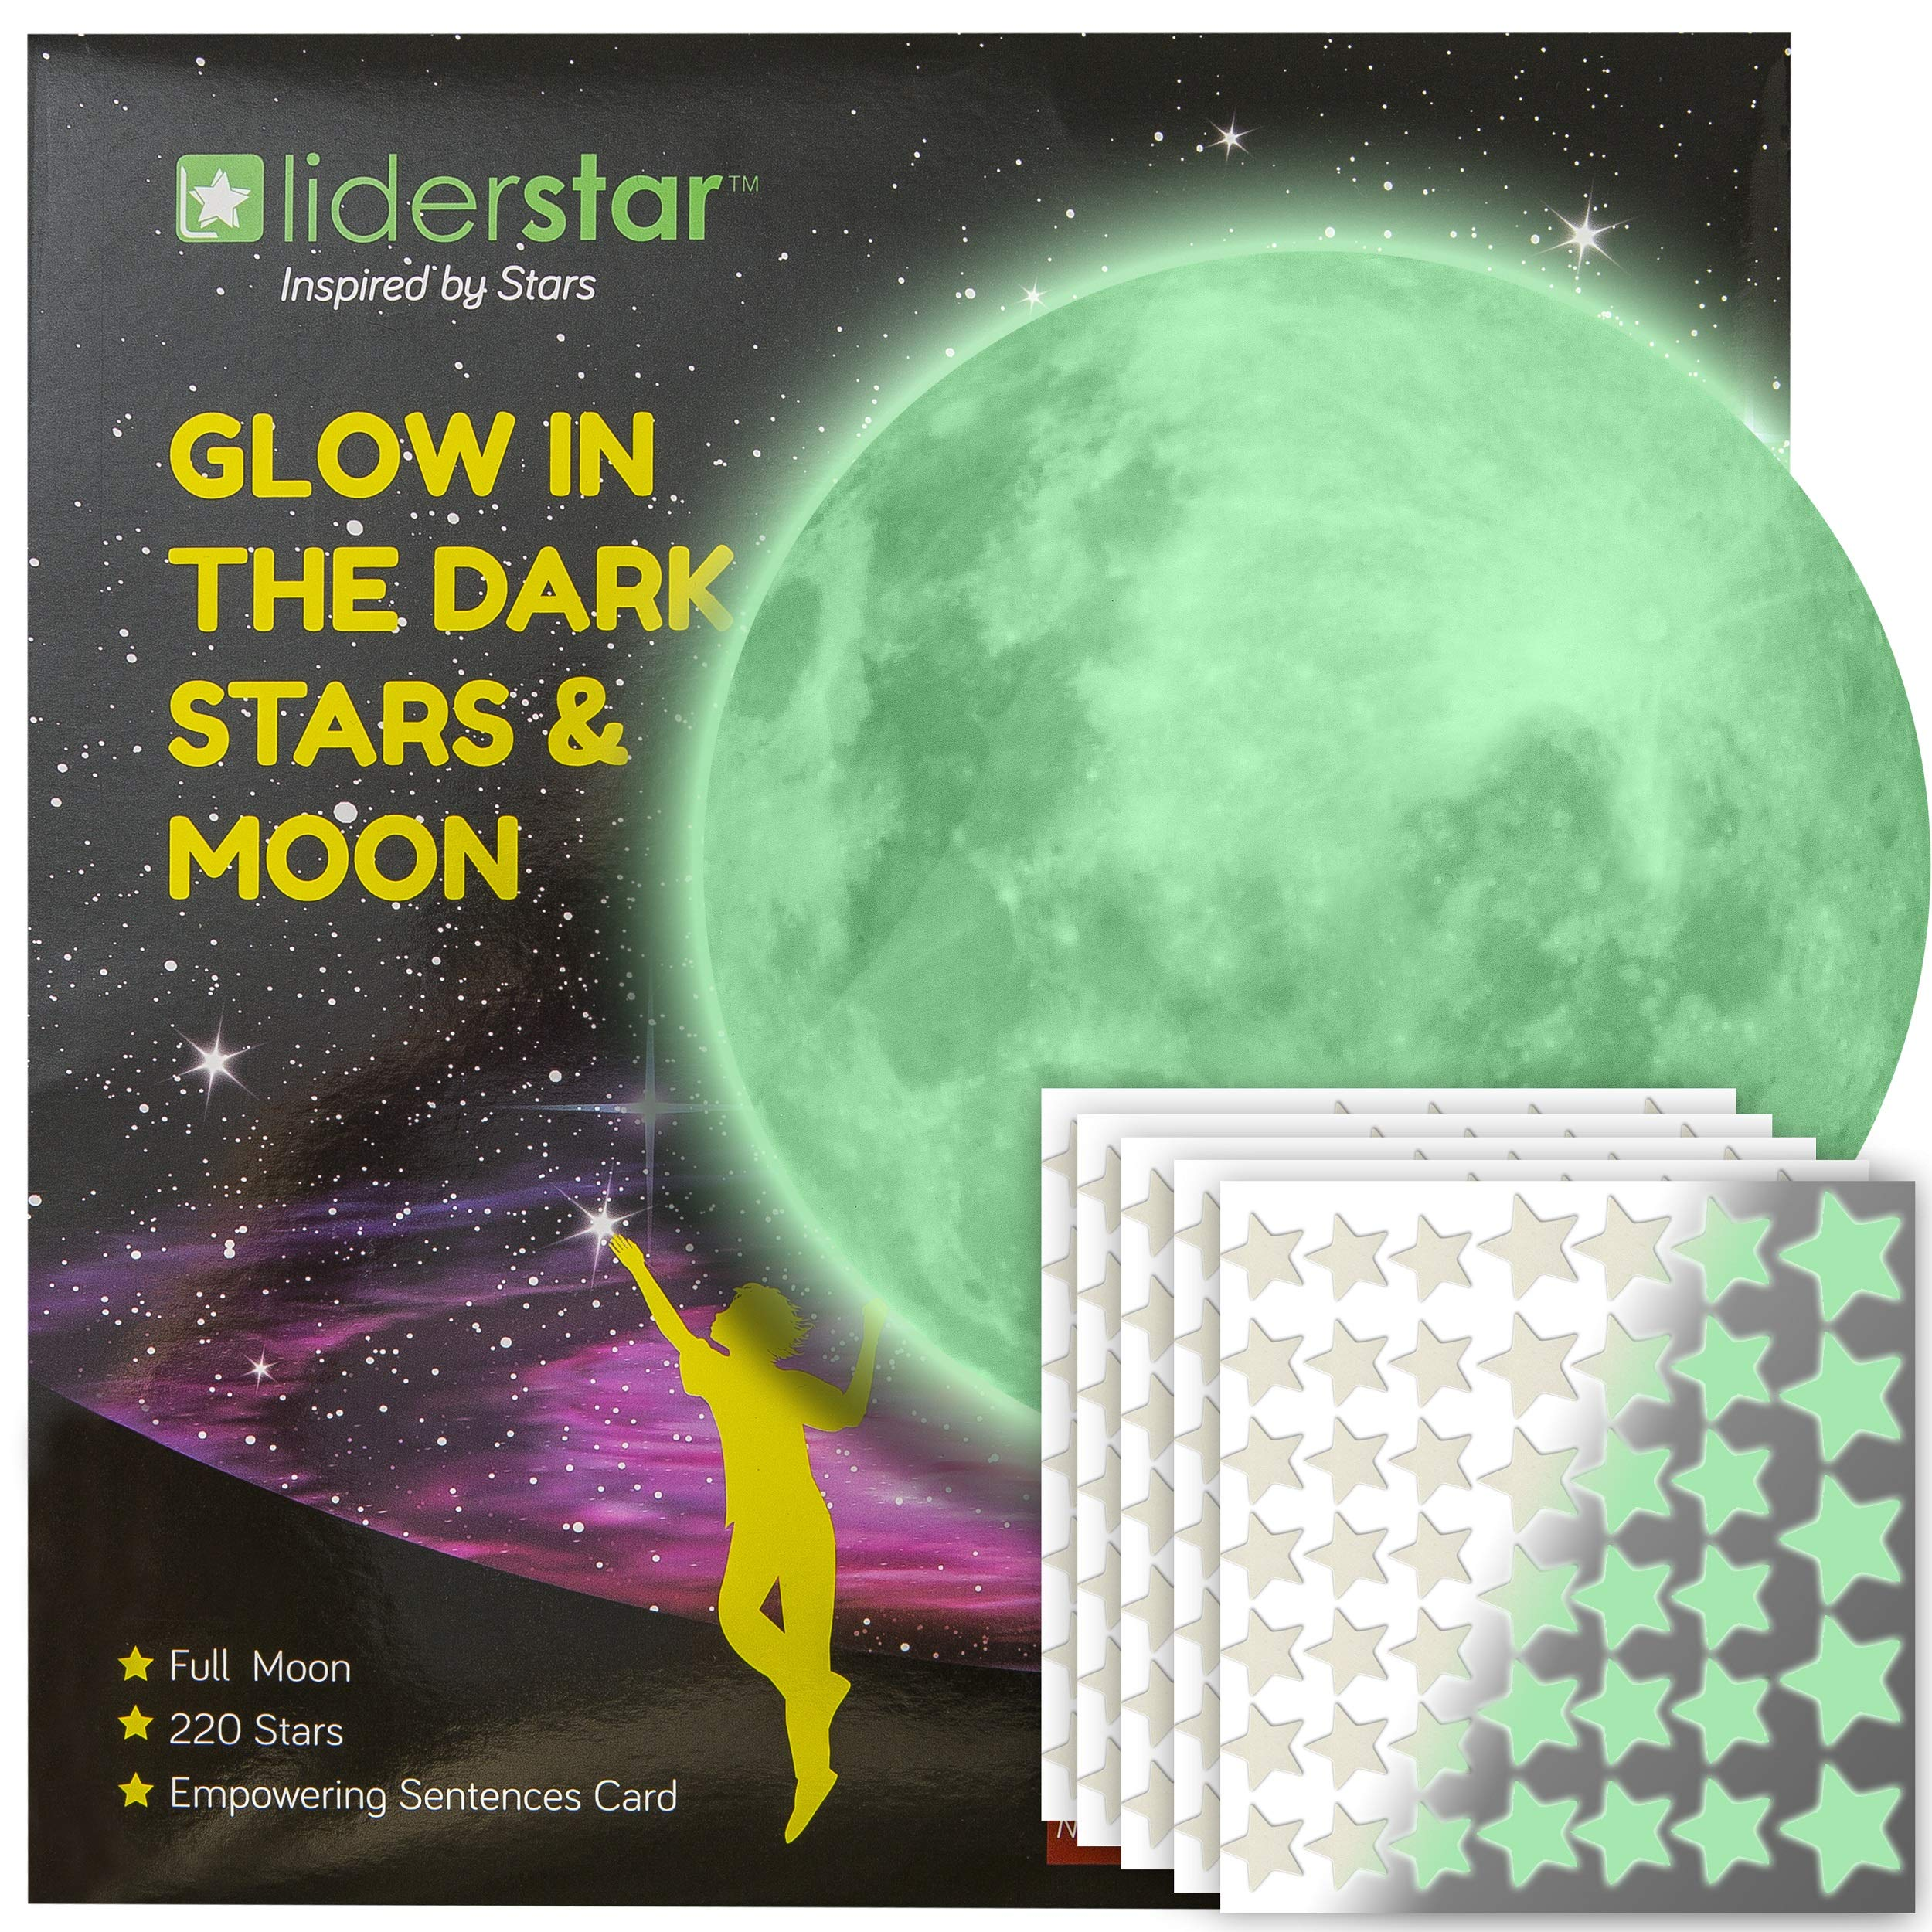 LIDERSTAR Glow in The Dark Stars and Free Removable Full Moon Wall Stickers 220 Adhesive Glowing Star Beautiful Wall Decals for Bedroom. for Room,Light Your Ceiling, Bonus Affirmation Card for Kids